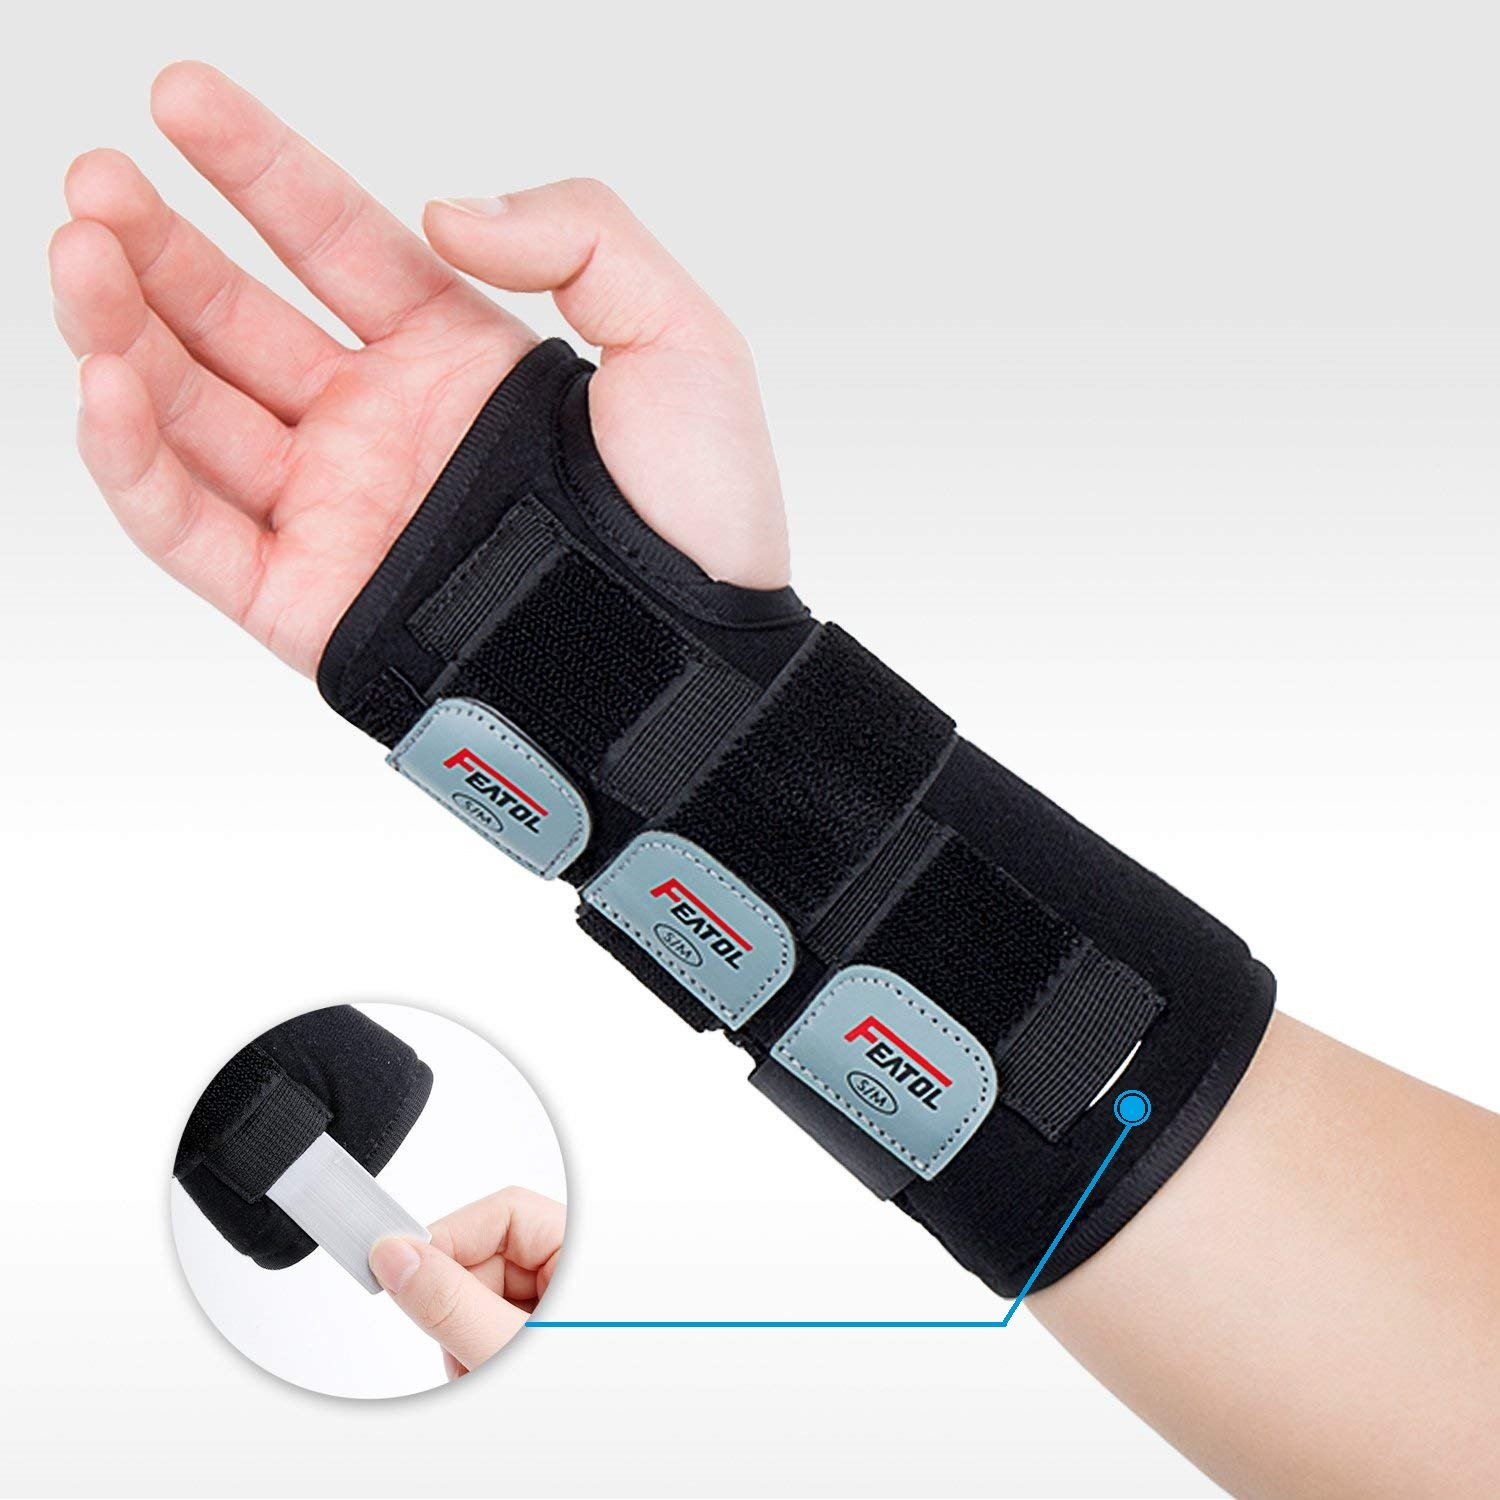 Featol Adjustable Wrist Support Brace with Splints for Carpal Tunnel, Injuries,Wrist Pain, Sprain (S/M, Right)